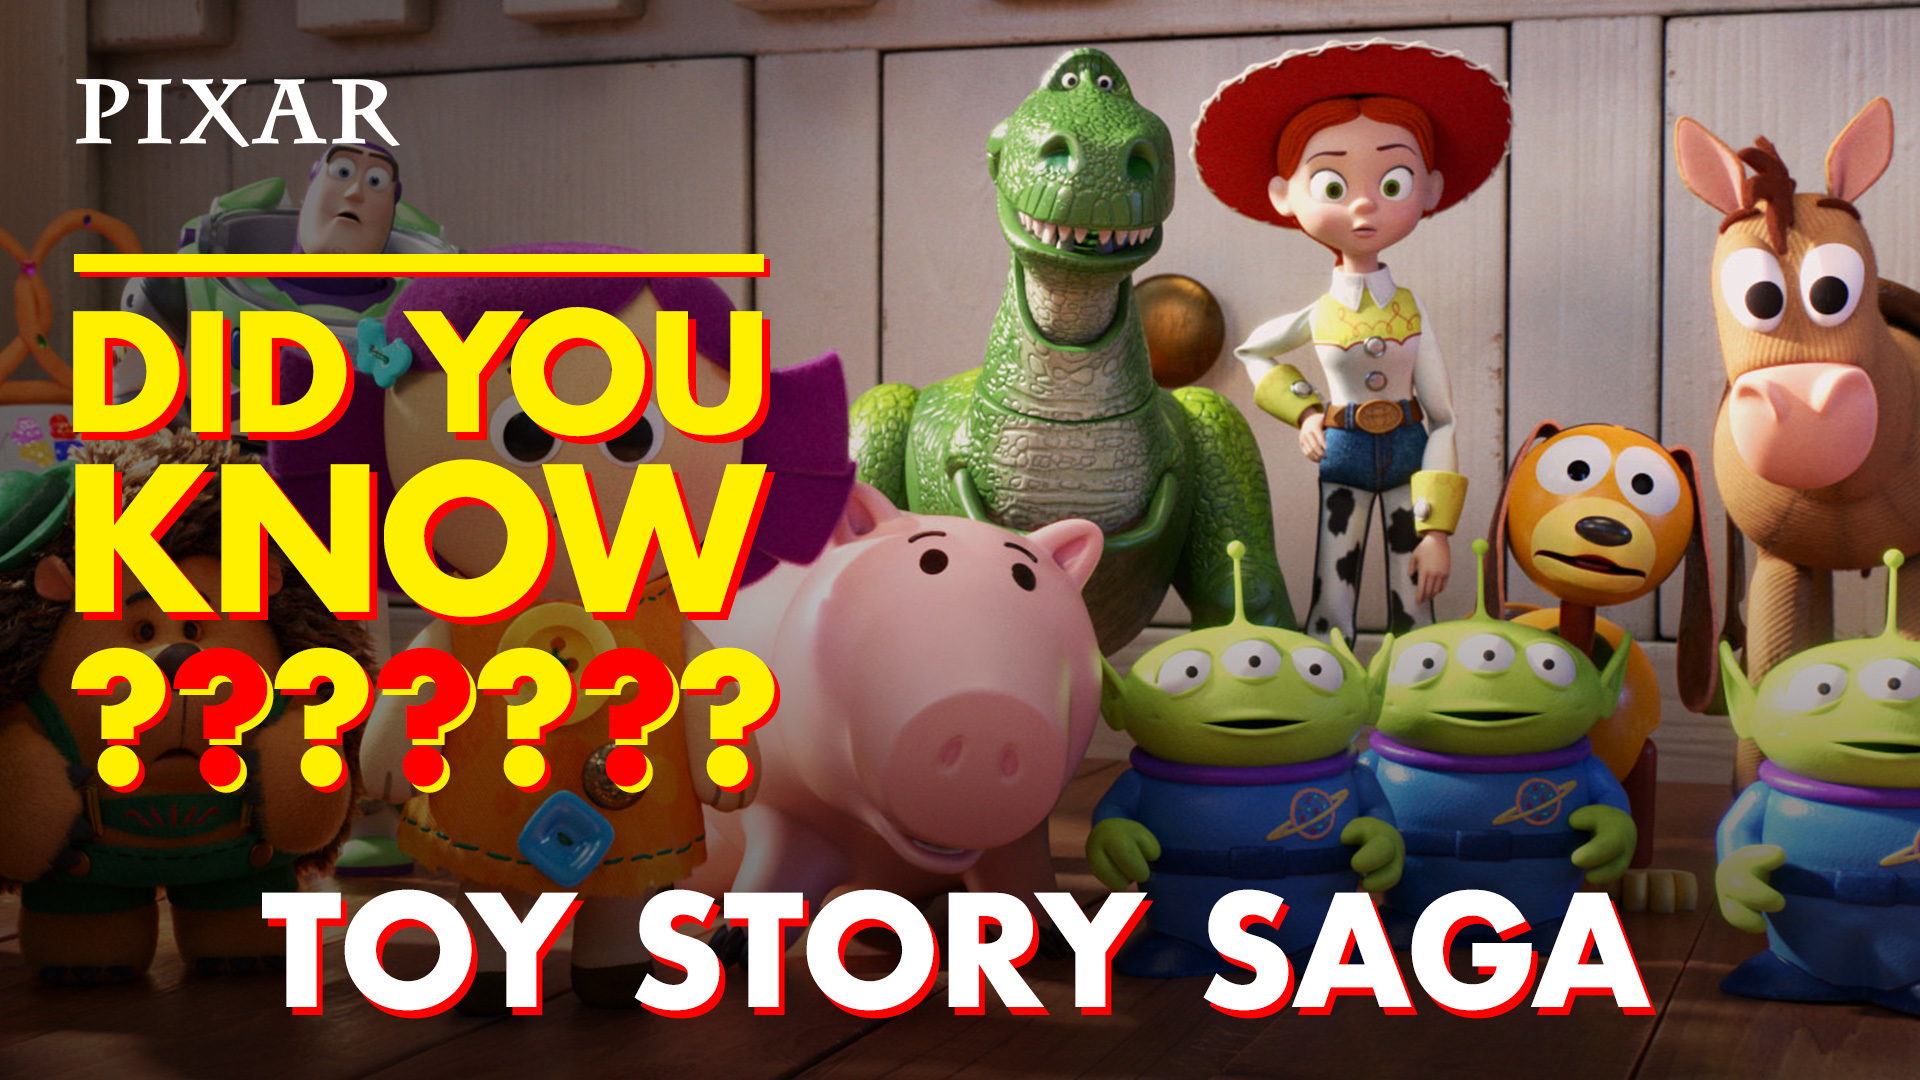 Toy Story Saga Fun Facts | Pixar Did You Know?